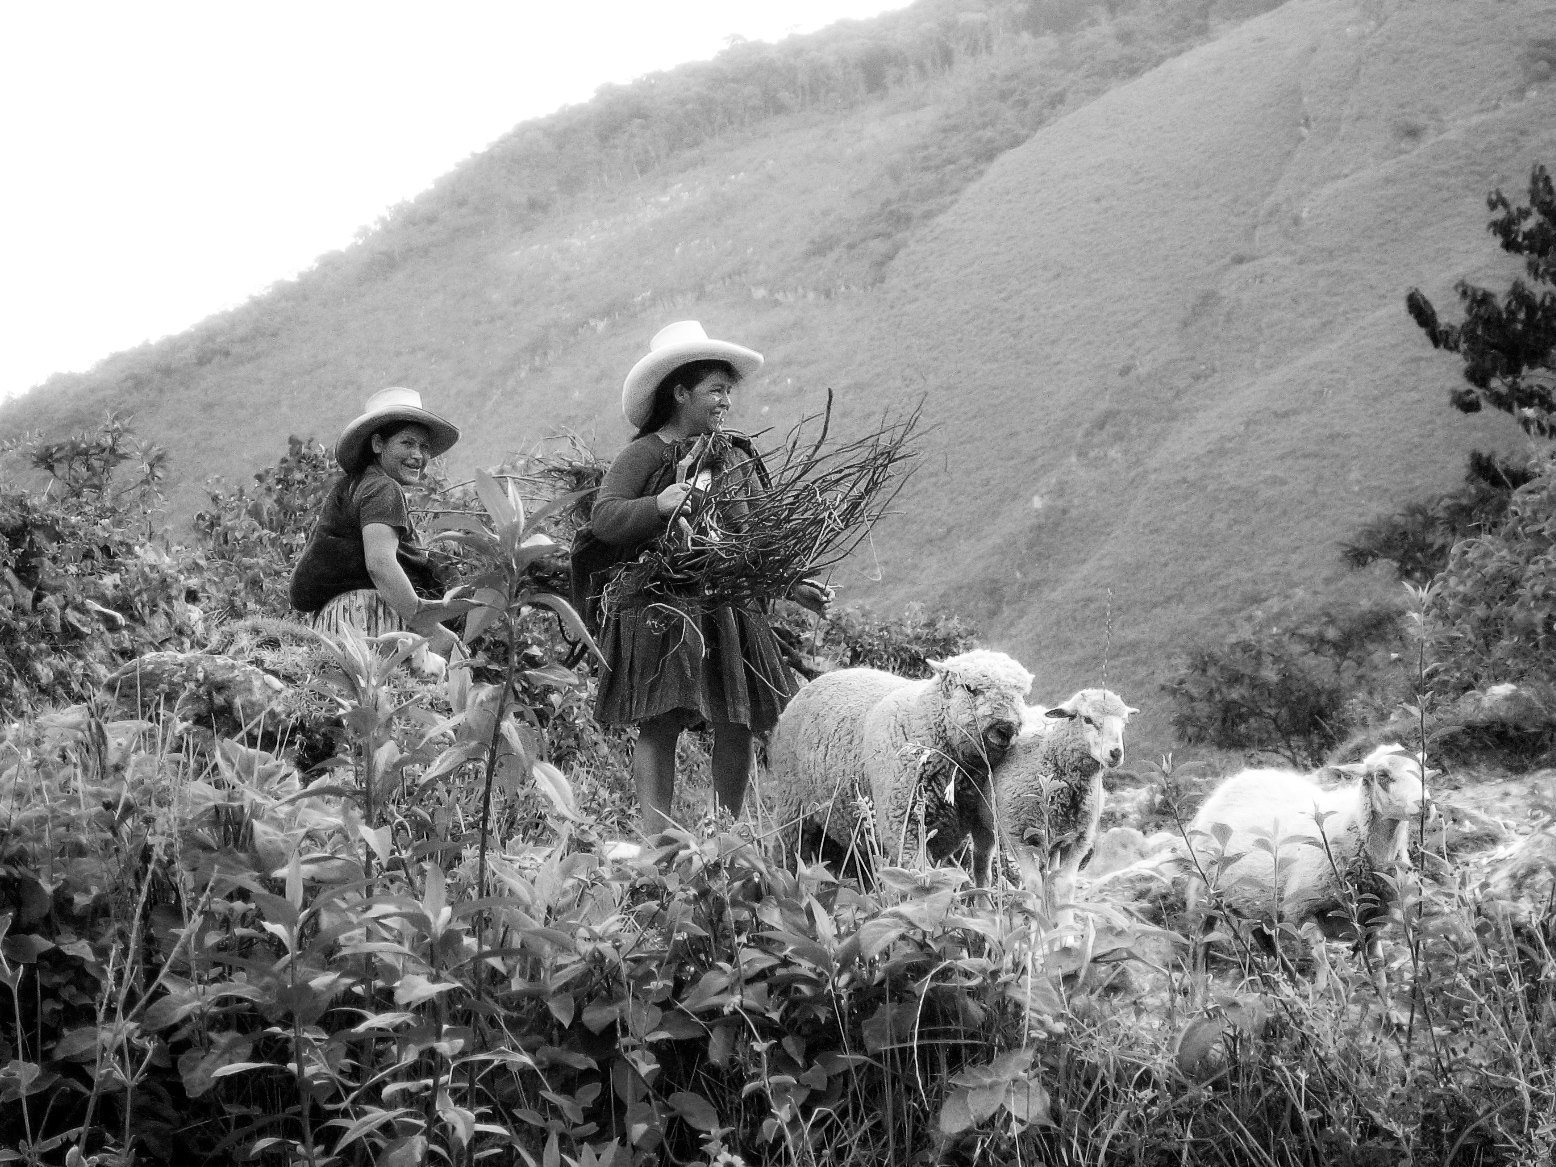 leymebamba_travel-to_most-spectacular-views-6312-bw_peruvian-women-carrying-branches-with-sheep.jpg